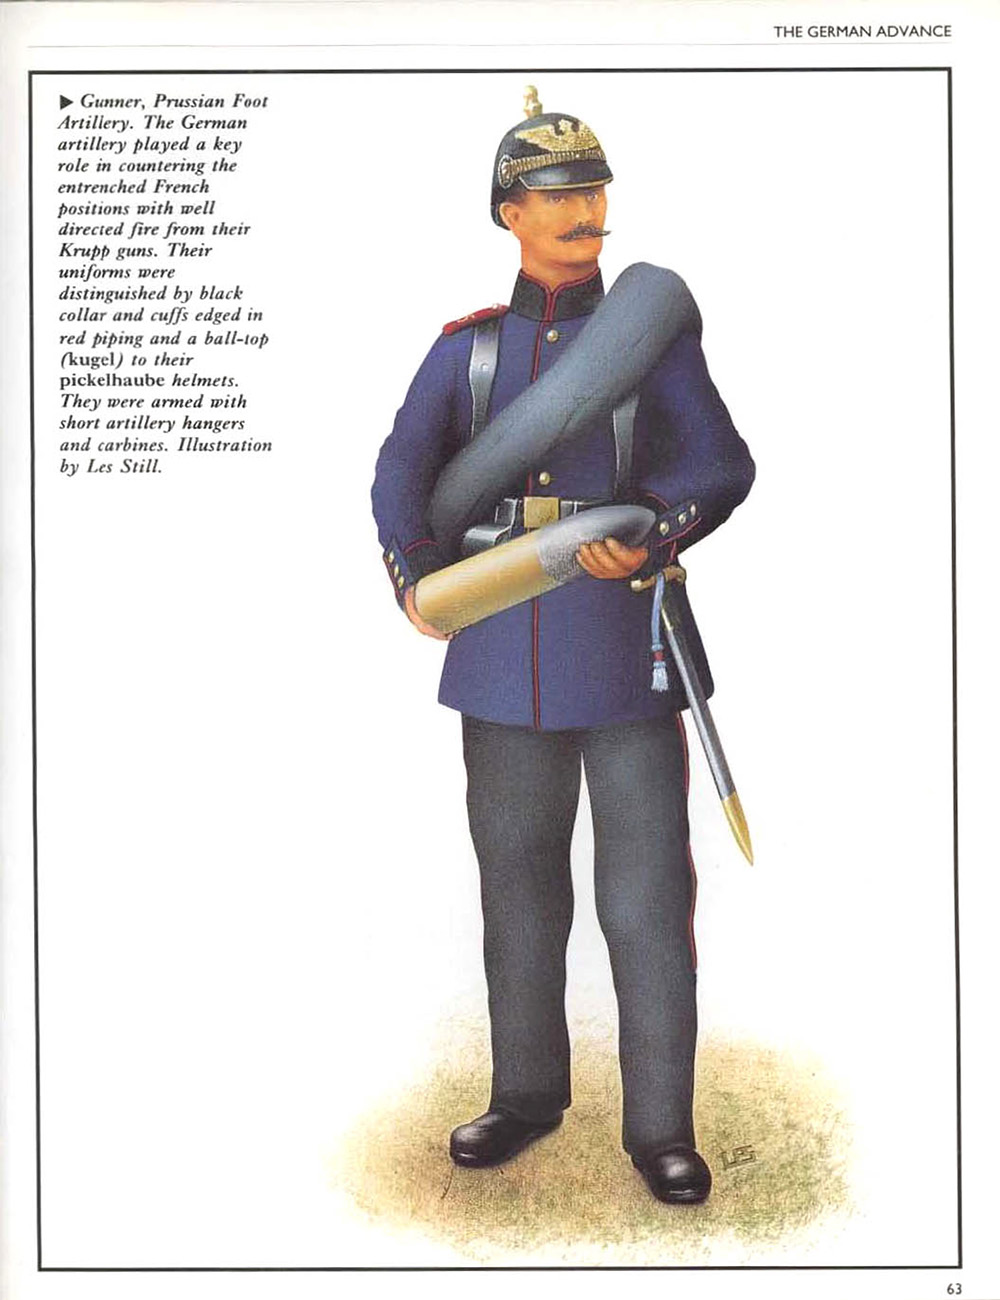 Gunner, Prussian Foot Artillery  Osprey Campaign #021 - Gravelotte-St Privat 1870 by Les Still